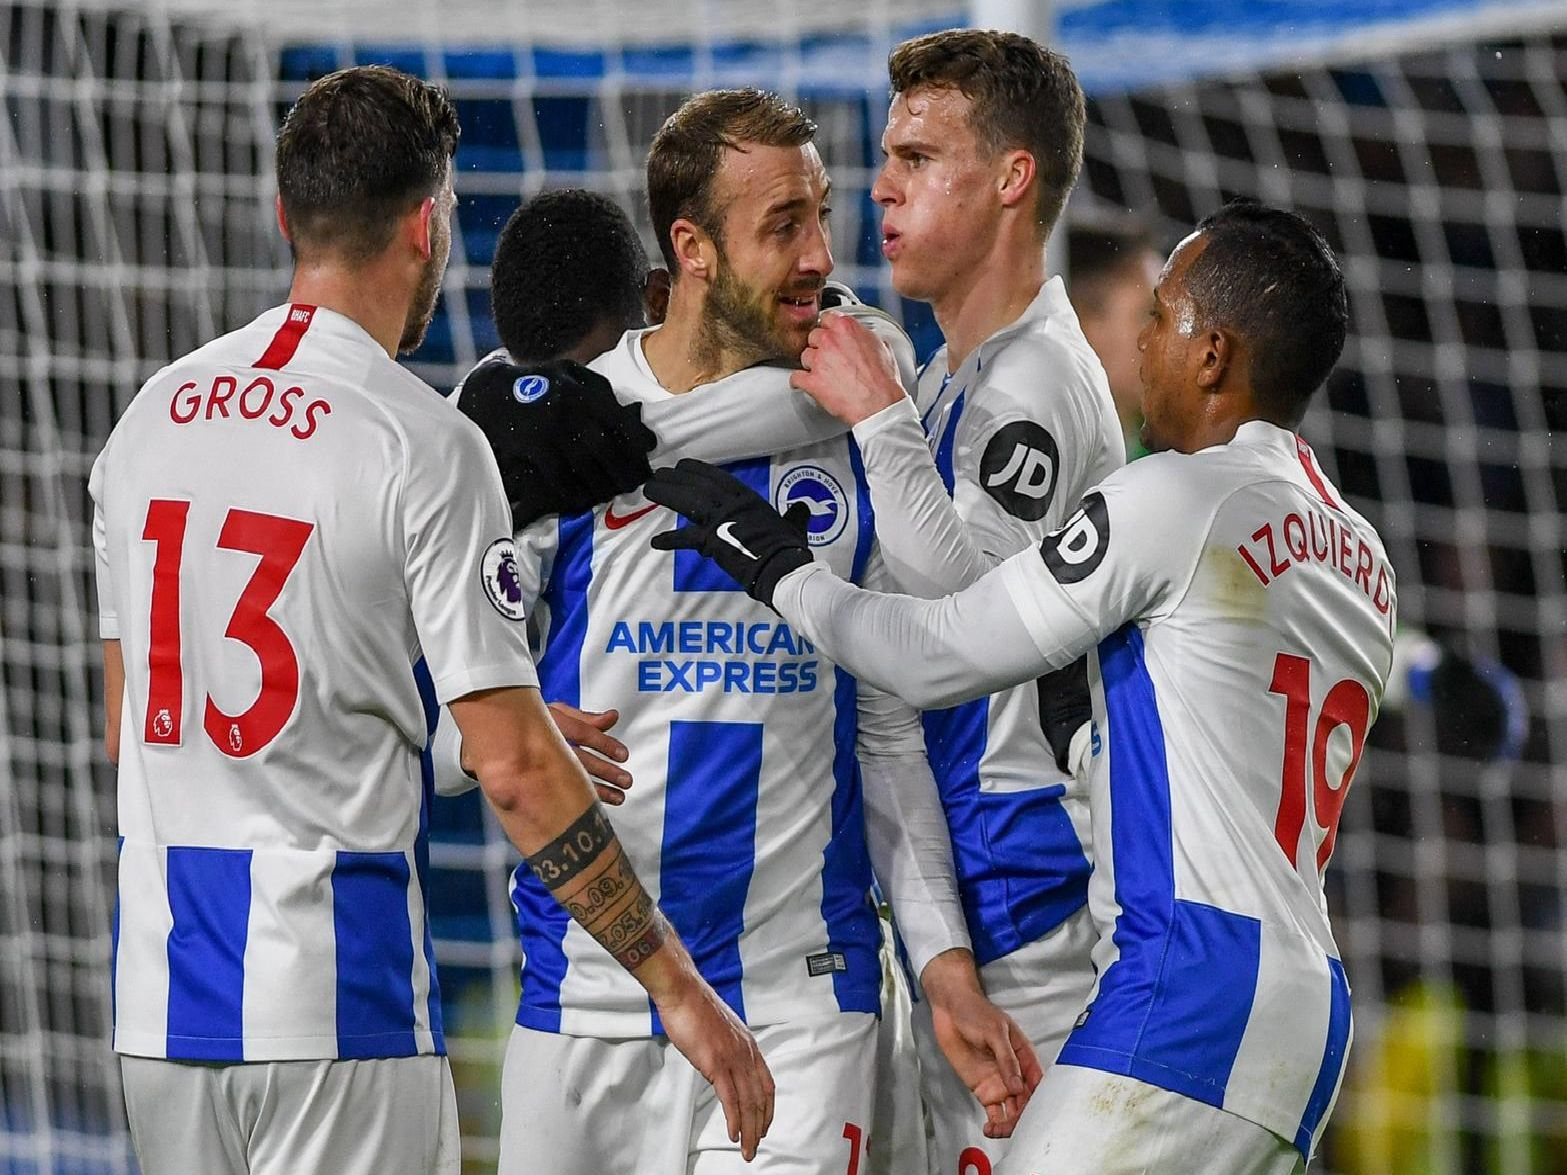 Brighton & Hove Albion: The market value of all 23 players